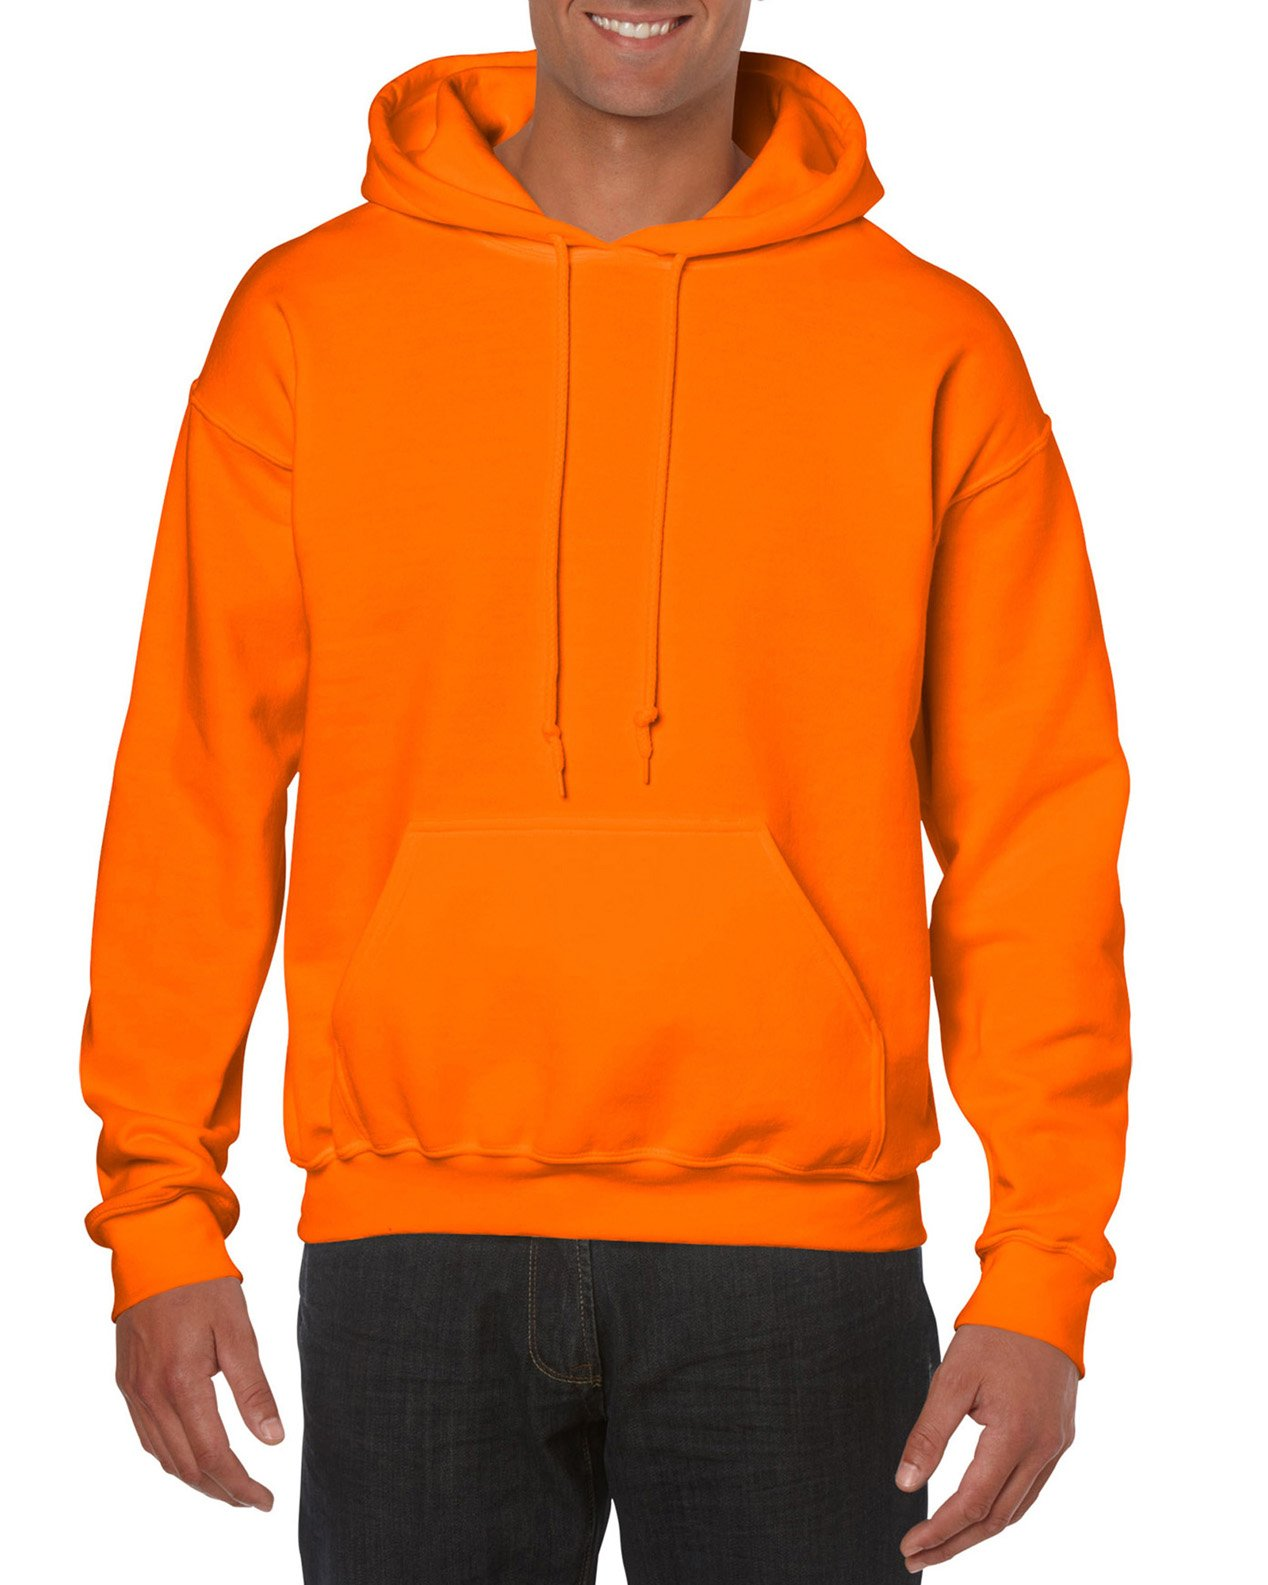 Gildan Men's Heavy Blend Fleece Hooded Sweatshirt G18500, Safety Orange, X-Large by Gildan